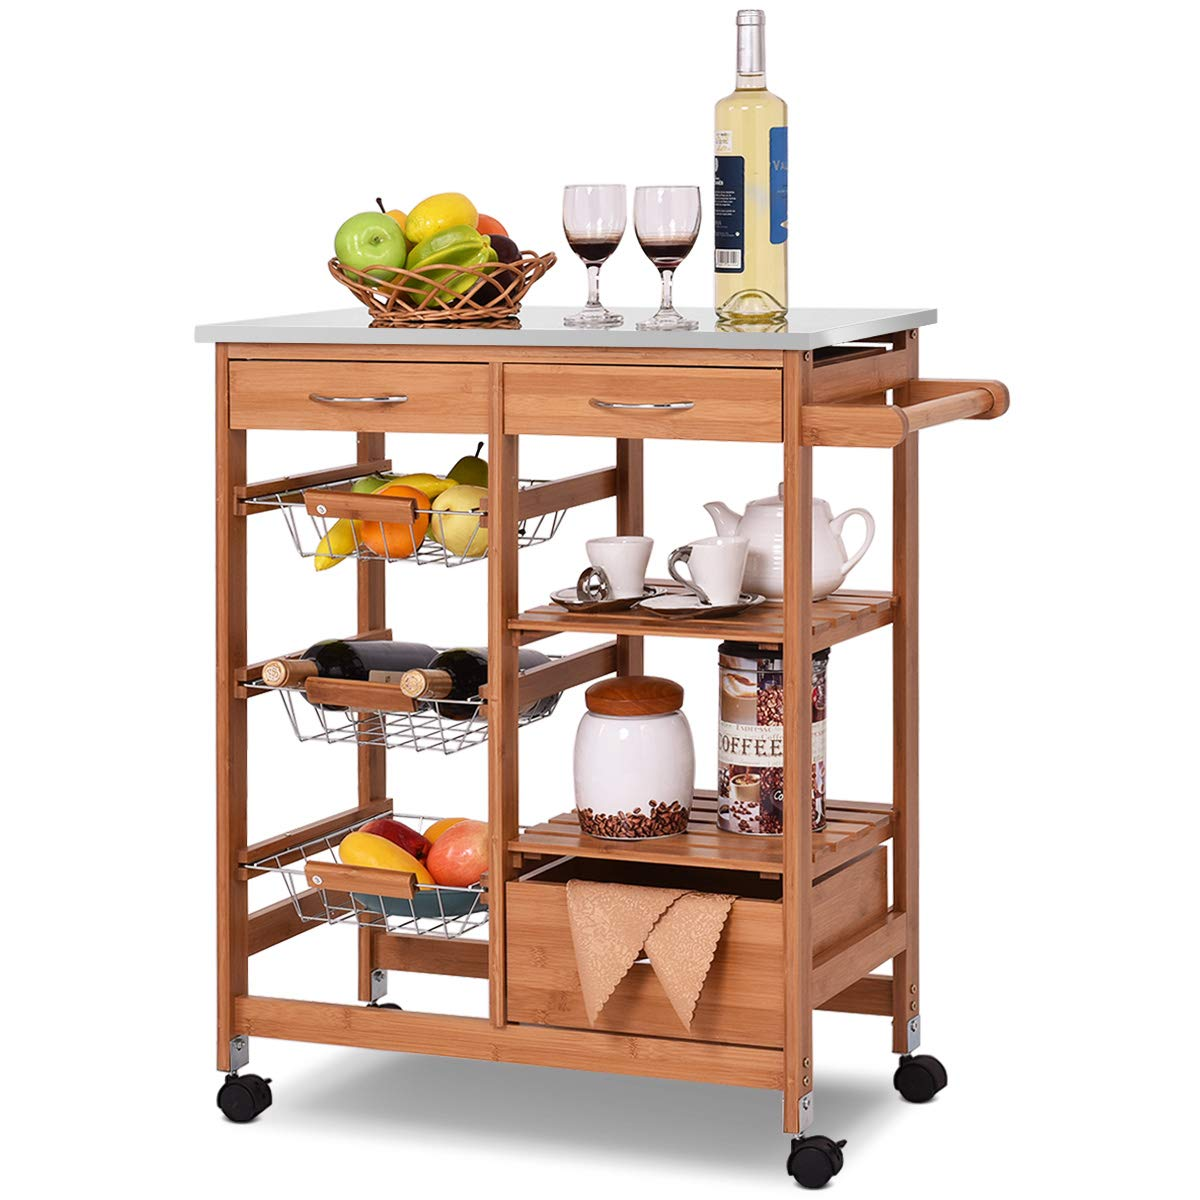 Giantex Kitchen Cart Rolling Island Cart Bamboo Trolley w/Stainless Steel Top, Storage Shelves, 3 Drawers, 3 Baskets, Towel Rack and Locking Wheels